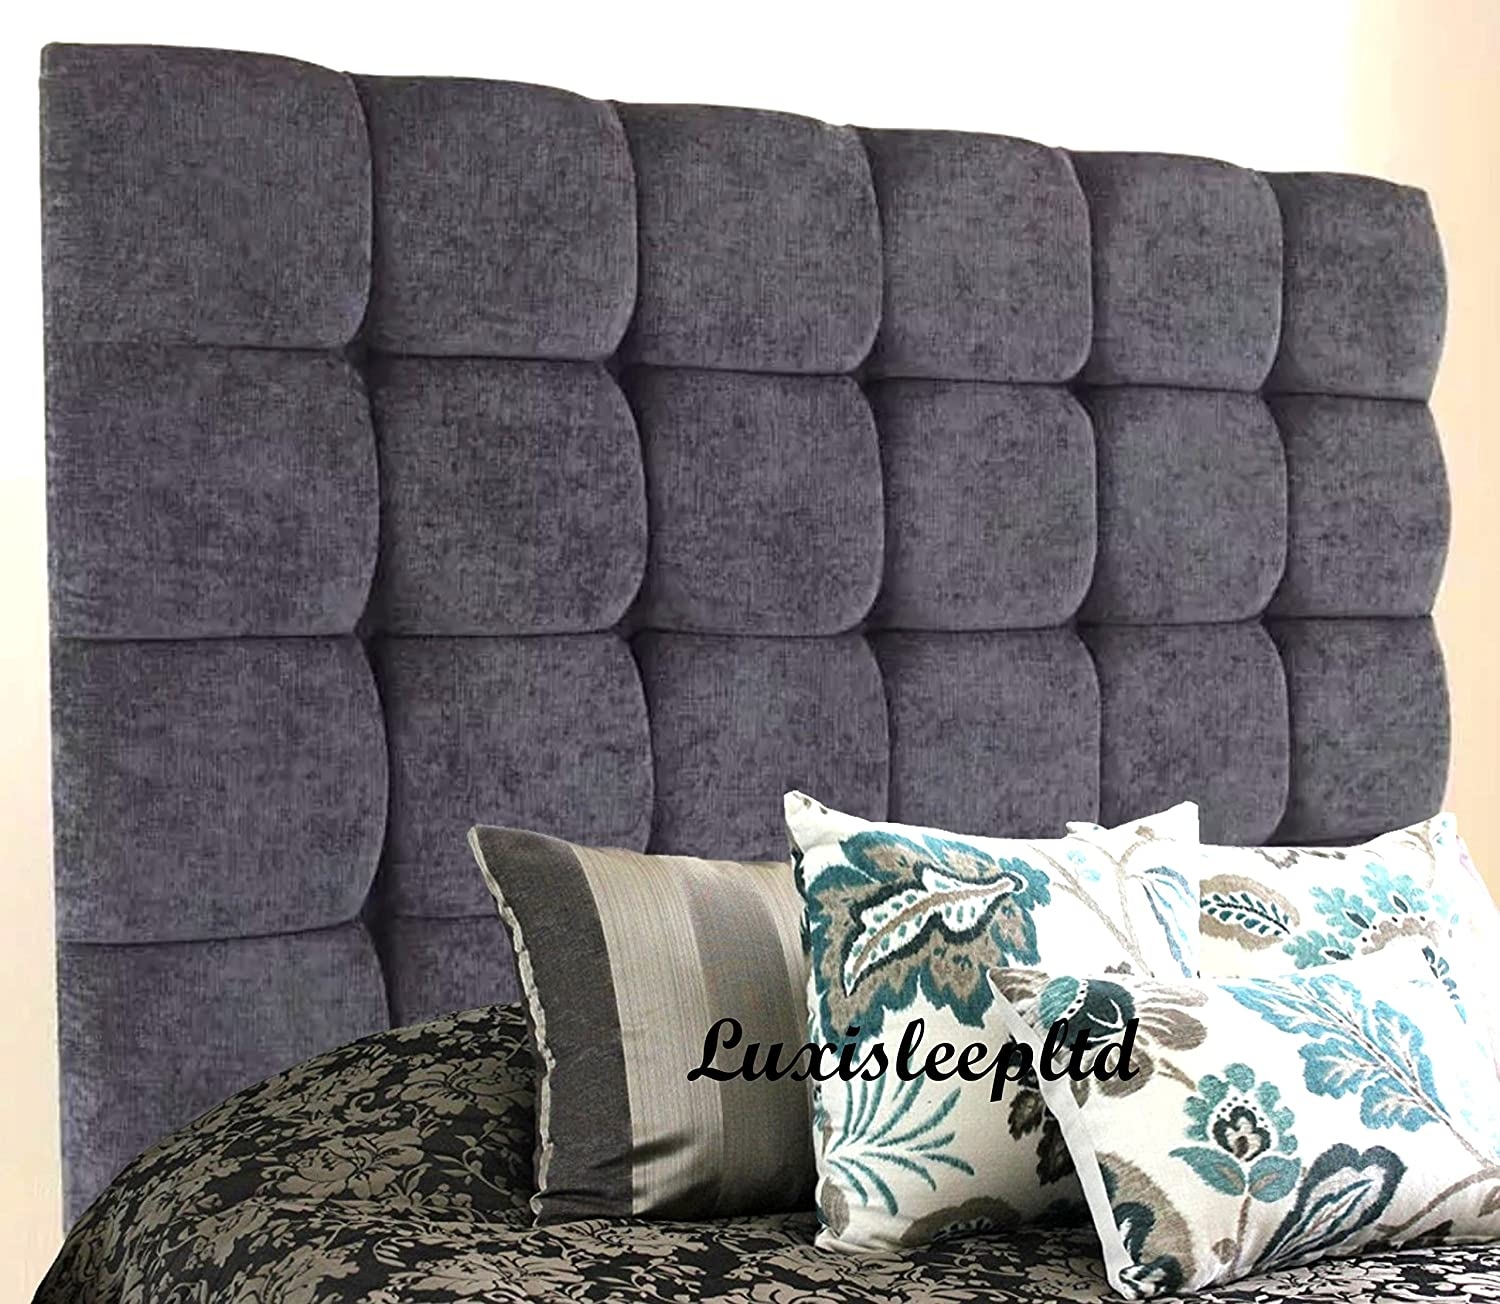 luxisleepltd Top Quality CUBES 30'' HEIGHT Headboard Finished In A Luxury Linen Fabric - Available in Range of Many Colours & All Sizes,3FT,4FT,4FT6,5FT,6ft (3ft, Black)